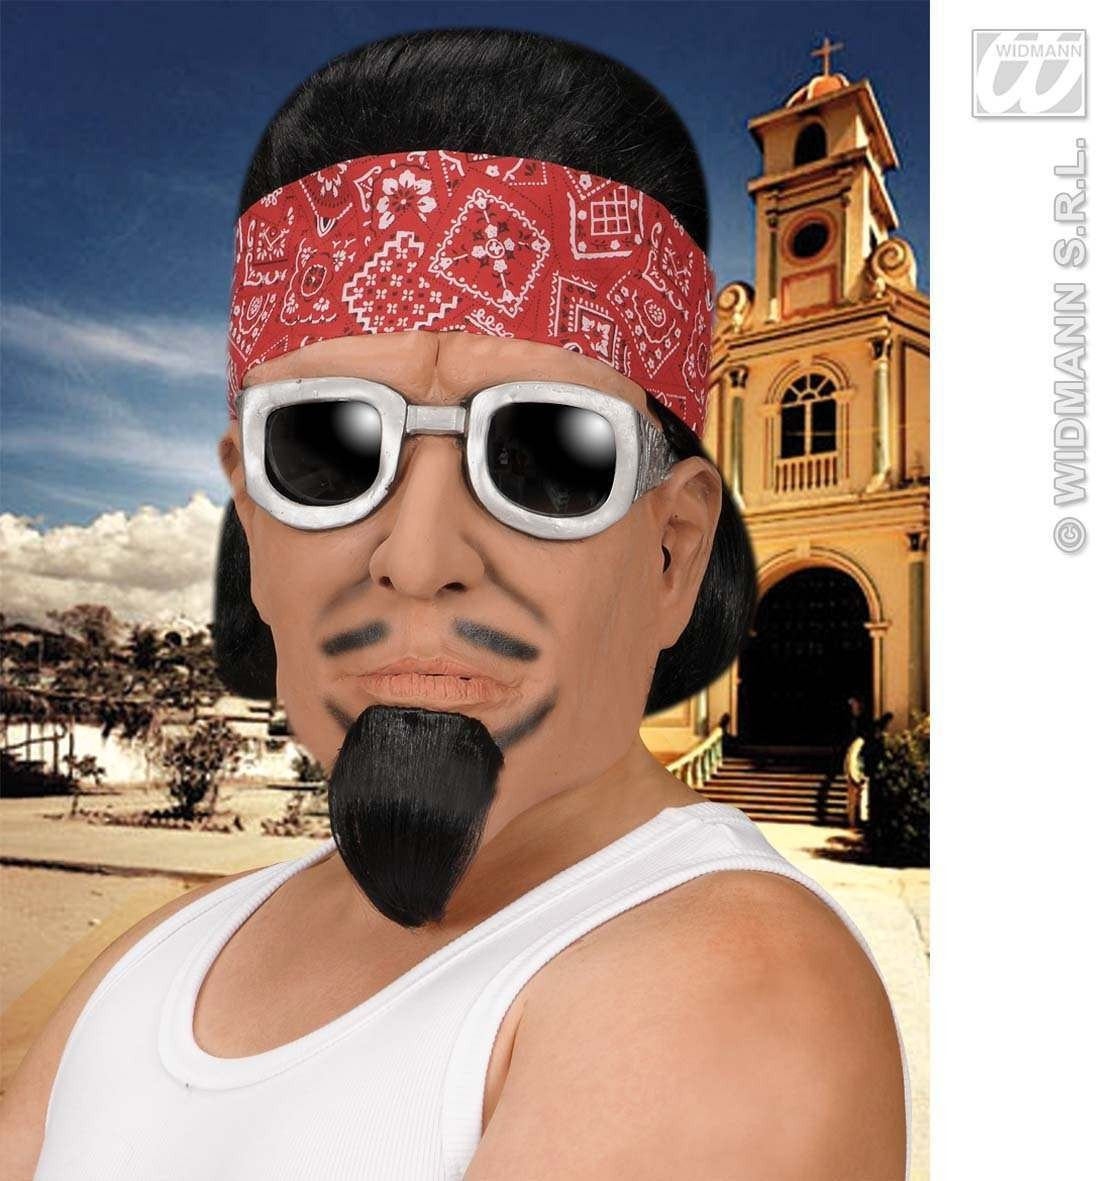 Latino Masks Wig Goatee Bandana/Sunglasses Fancy Dress